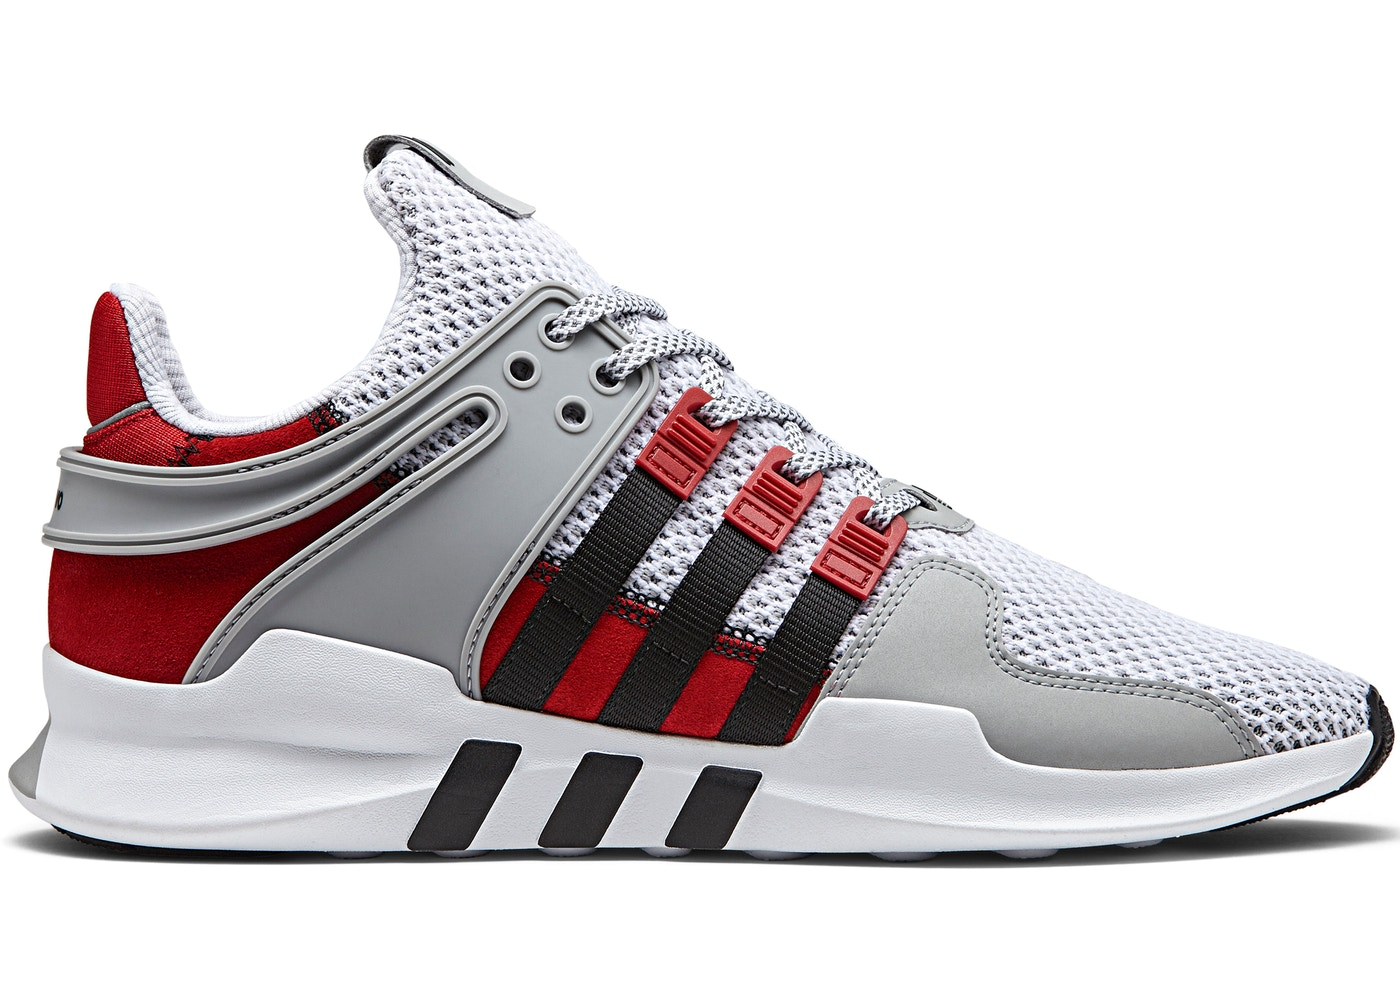 adidas EQT Support ADV Overkill Coat of Arms